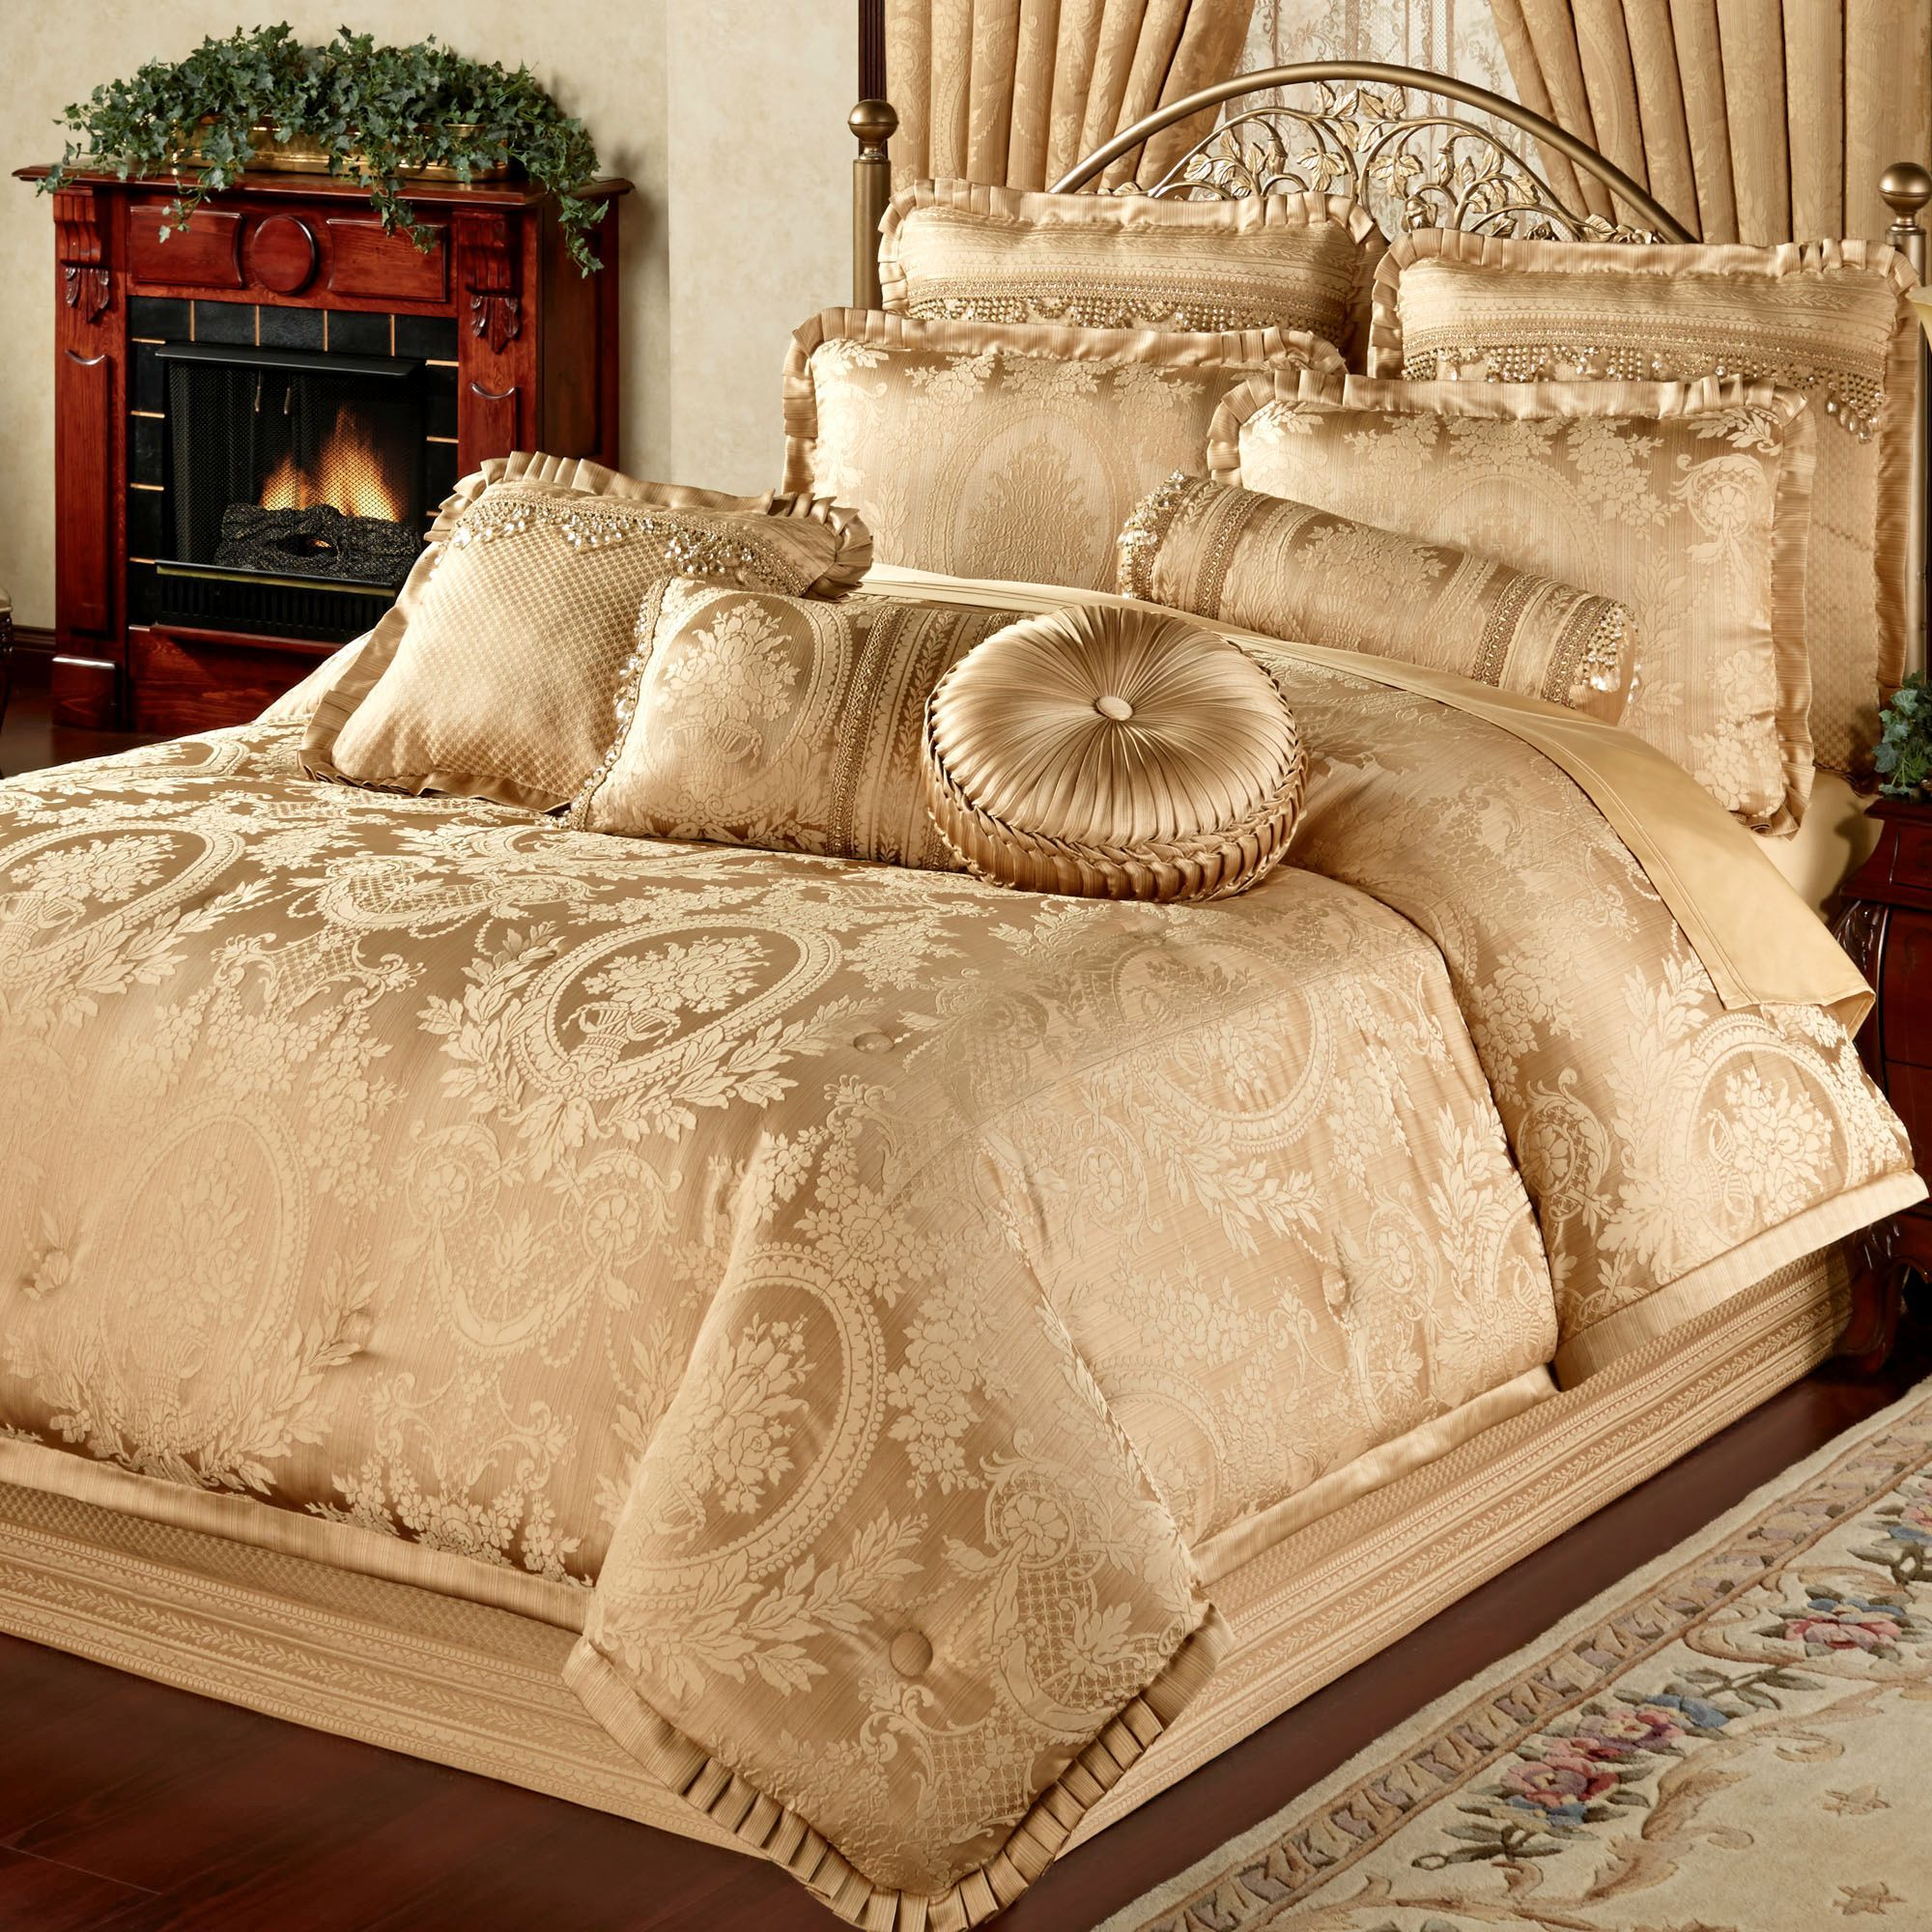 product hotel york comforter shipping bath today royal free overstock bedding bloom set new